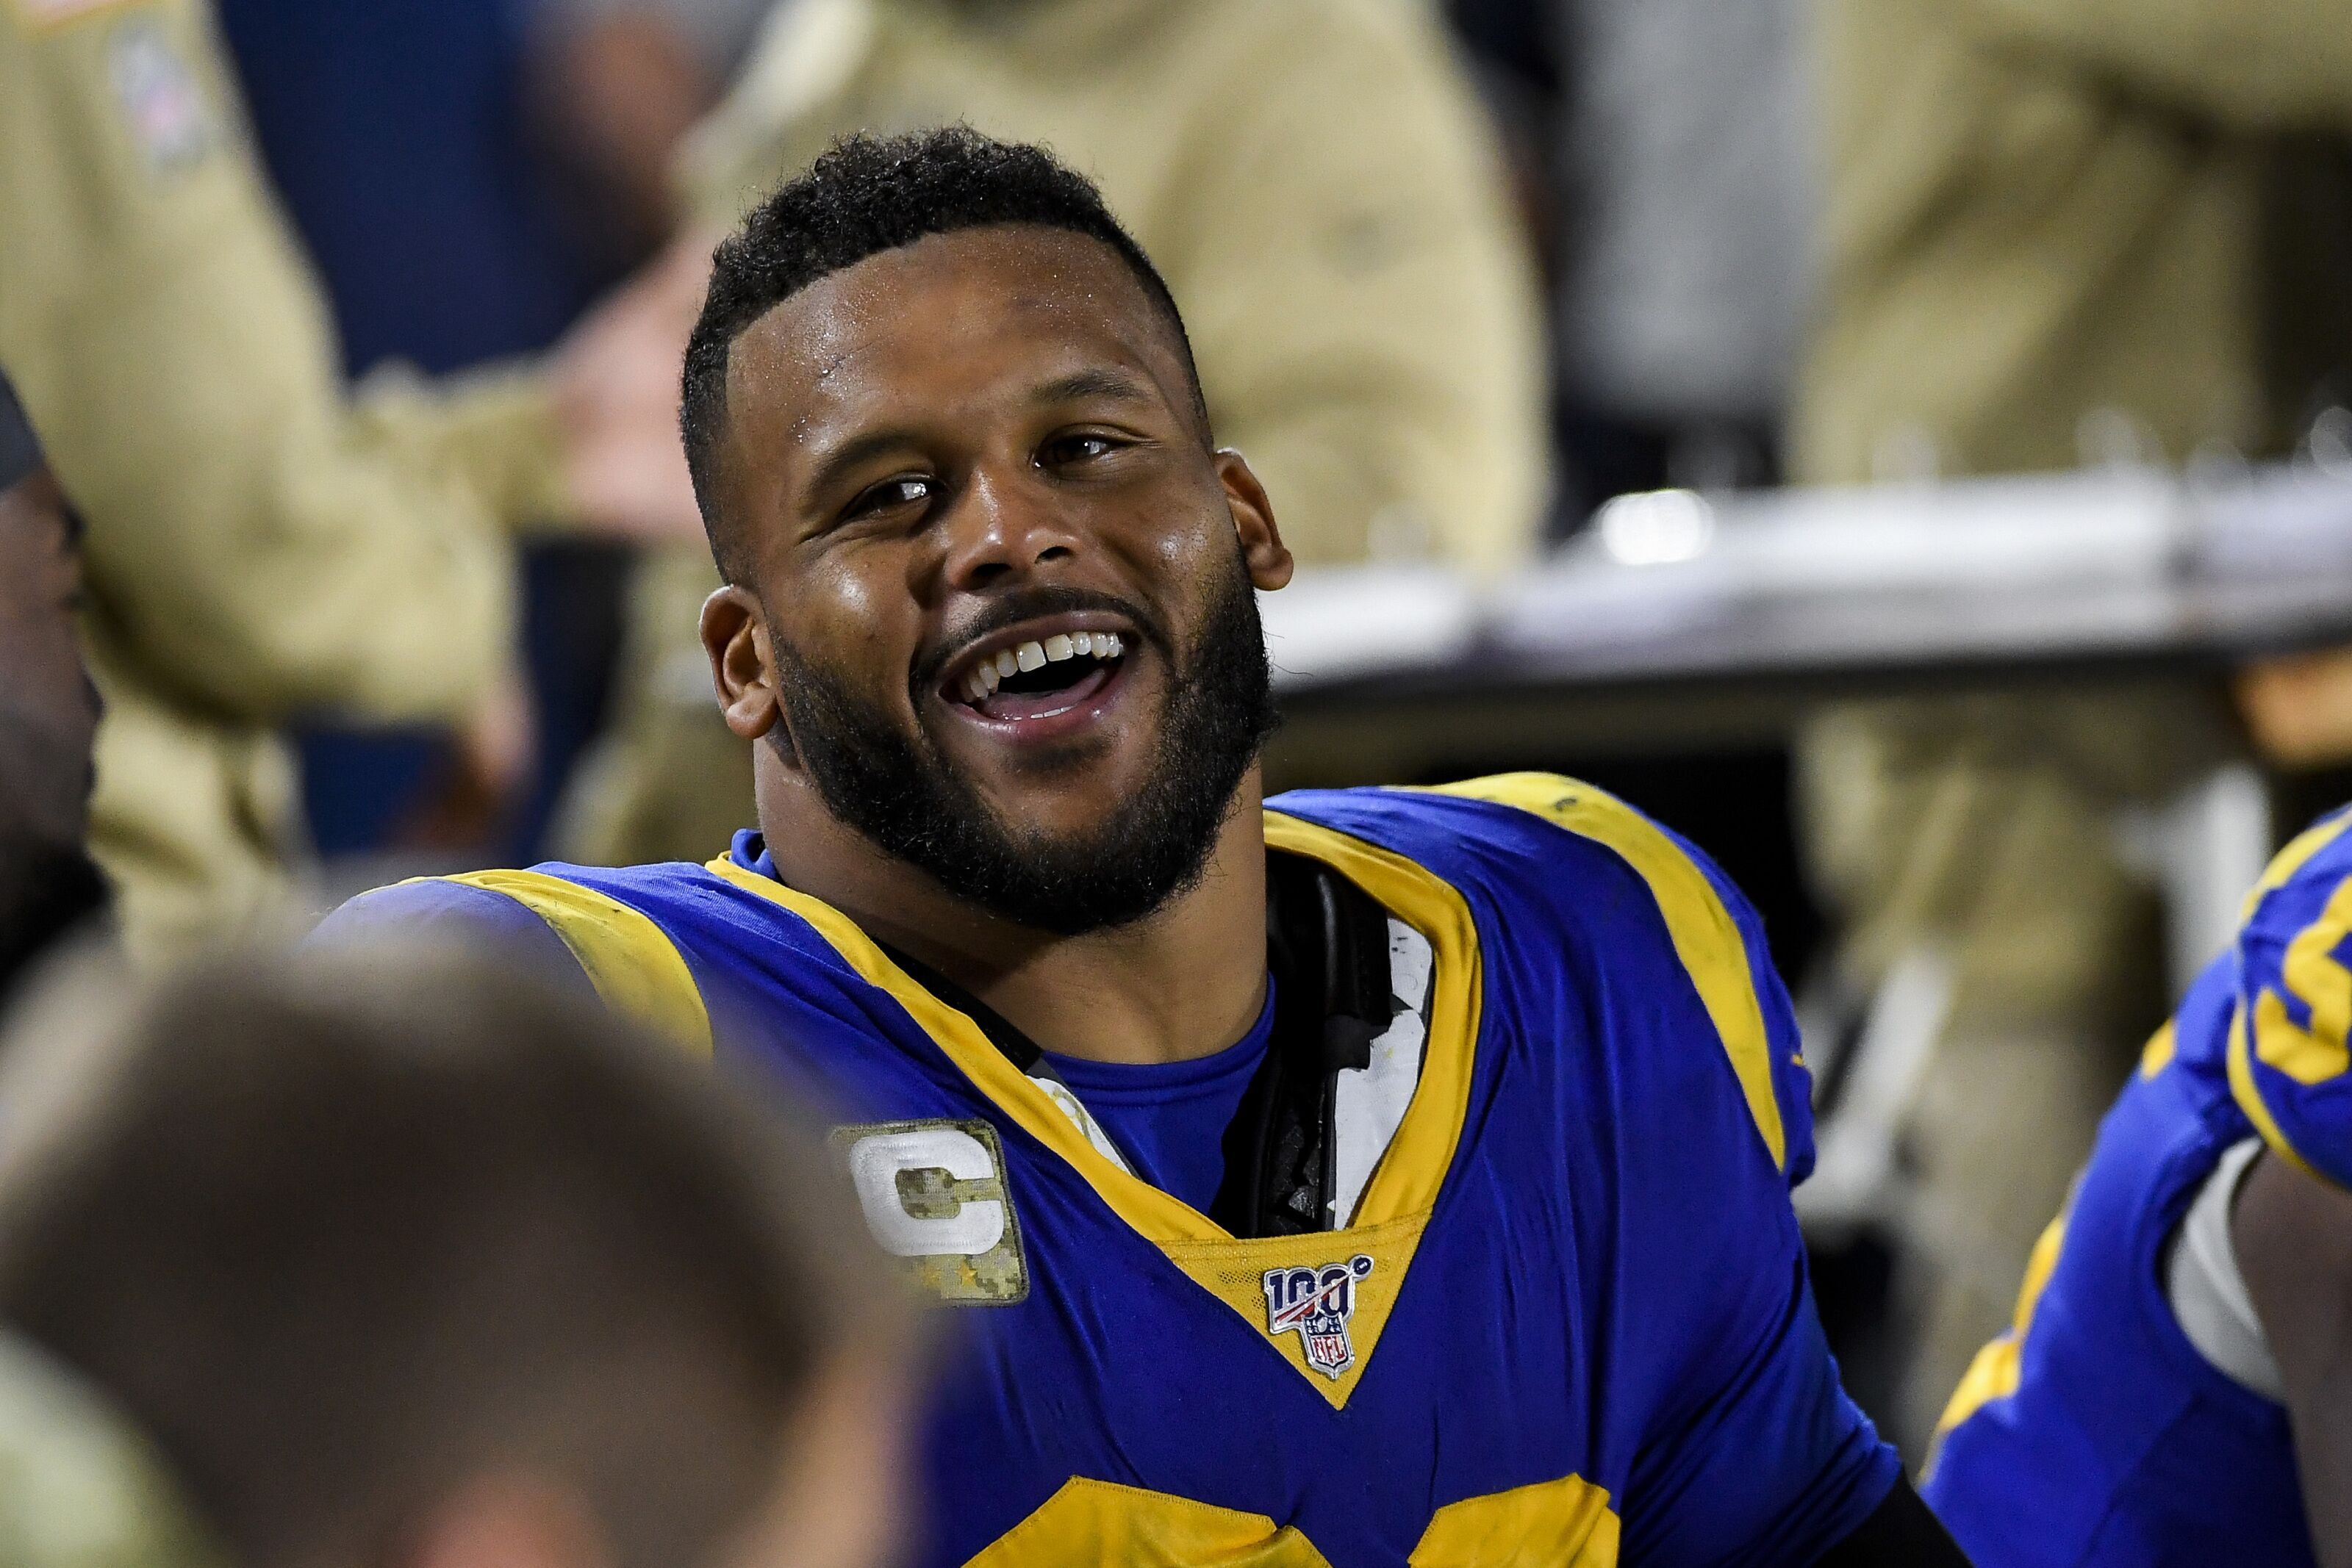 Aaron Donald recording sack for sixth game in a row against Ravens will be challenging